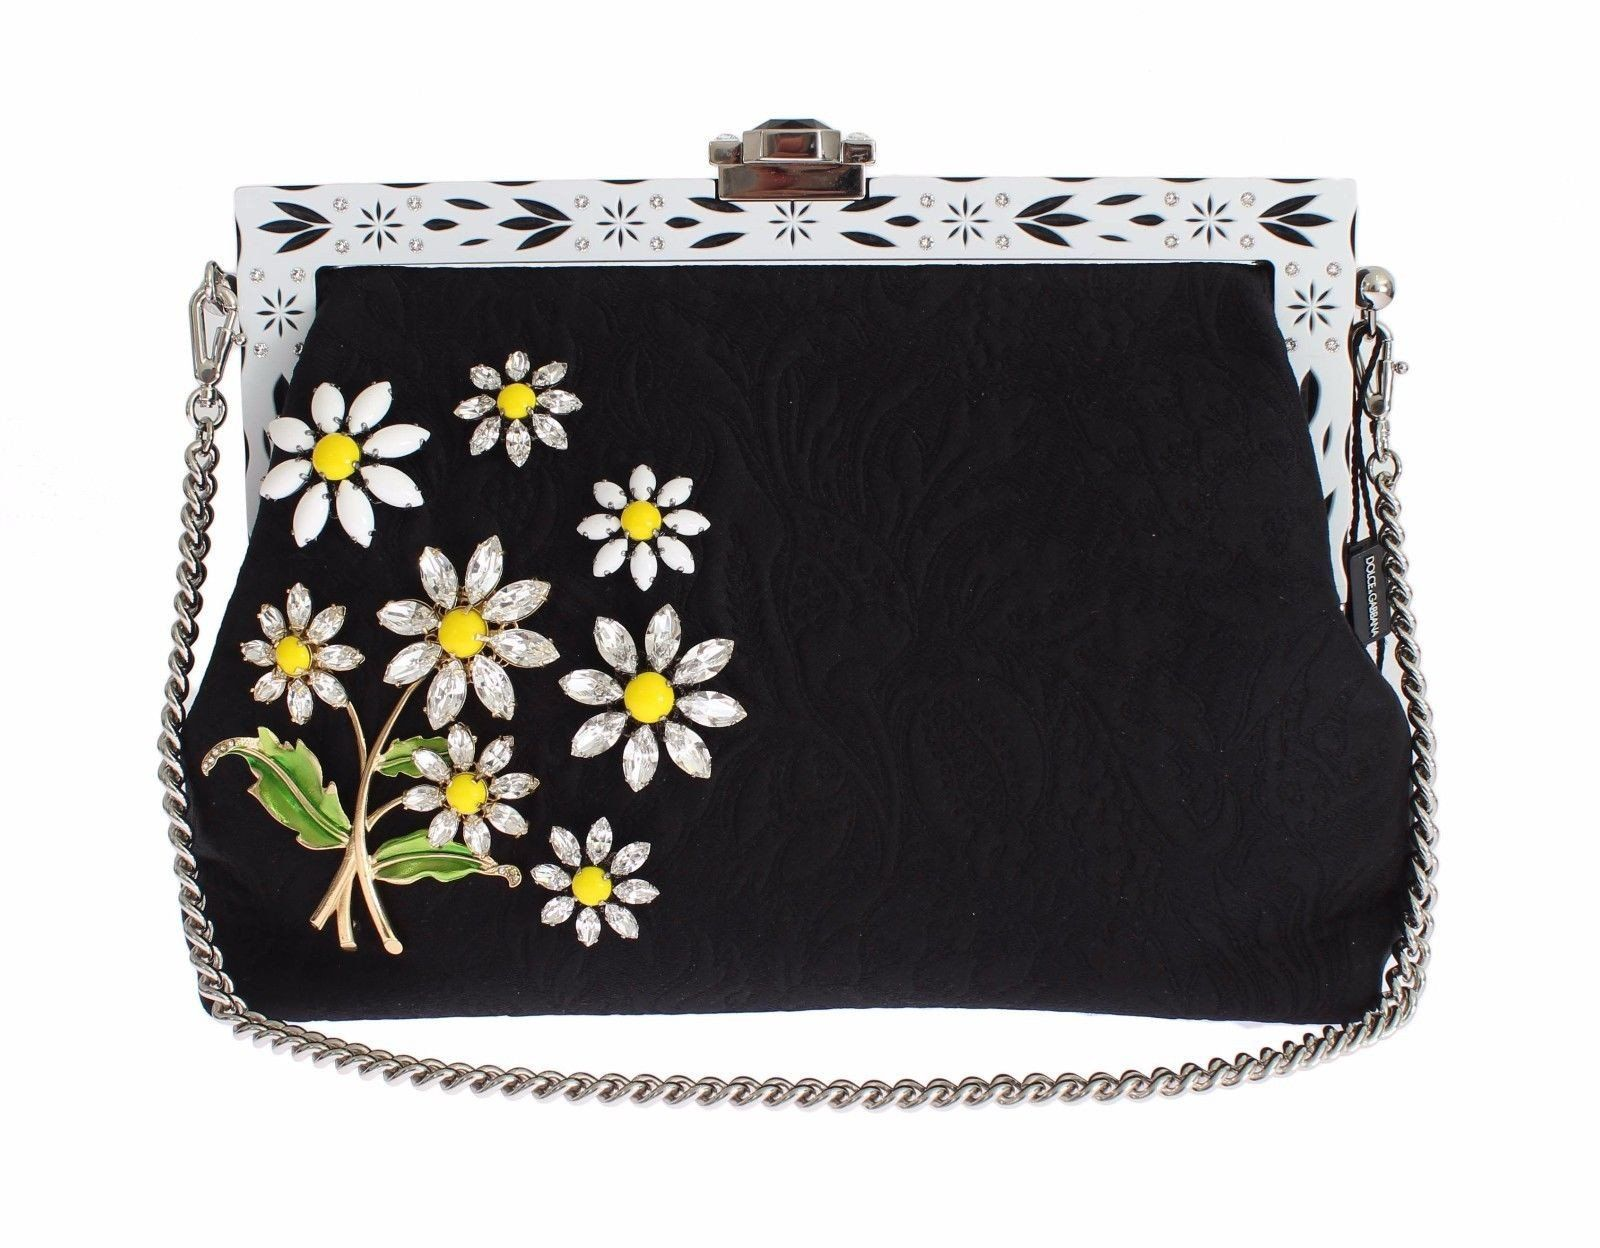 9f44b94e2c14 Purse VANDA Black Brocade Floral Crystal Clutch